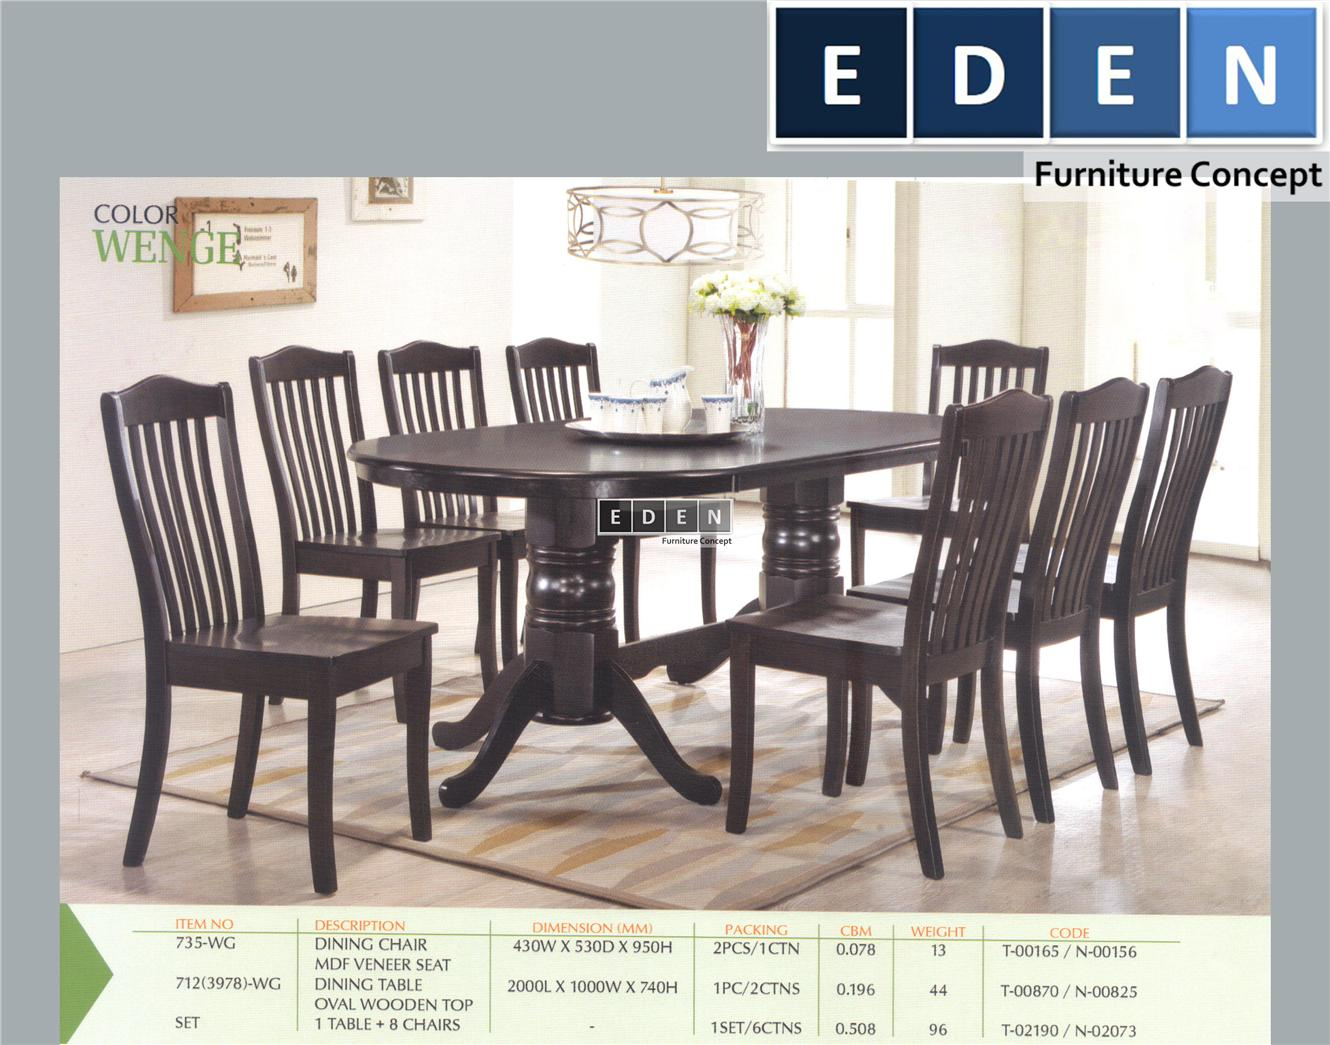 FURNITURE MALAYSIA KITCHEN DINING end 6102017 1115 PM : furniture malaysia kitchen dining table set meja makan set 712s kykstore 1506 11 KYKstore2 from www.lelong.com.my size 1330 x 1045 jpeg 170kB